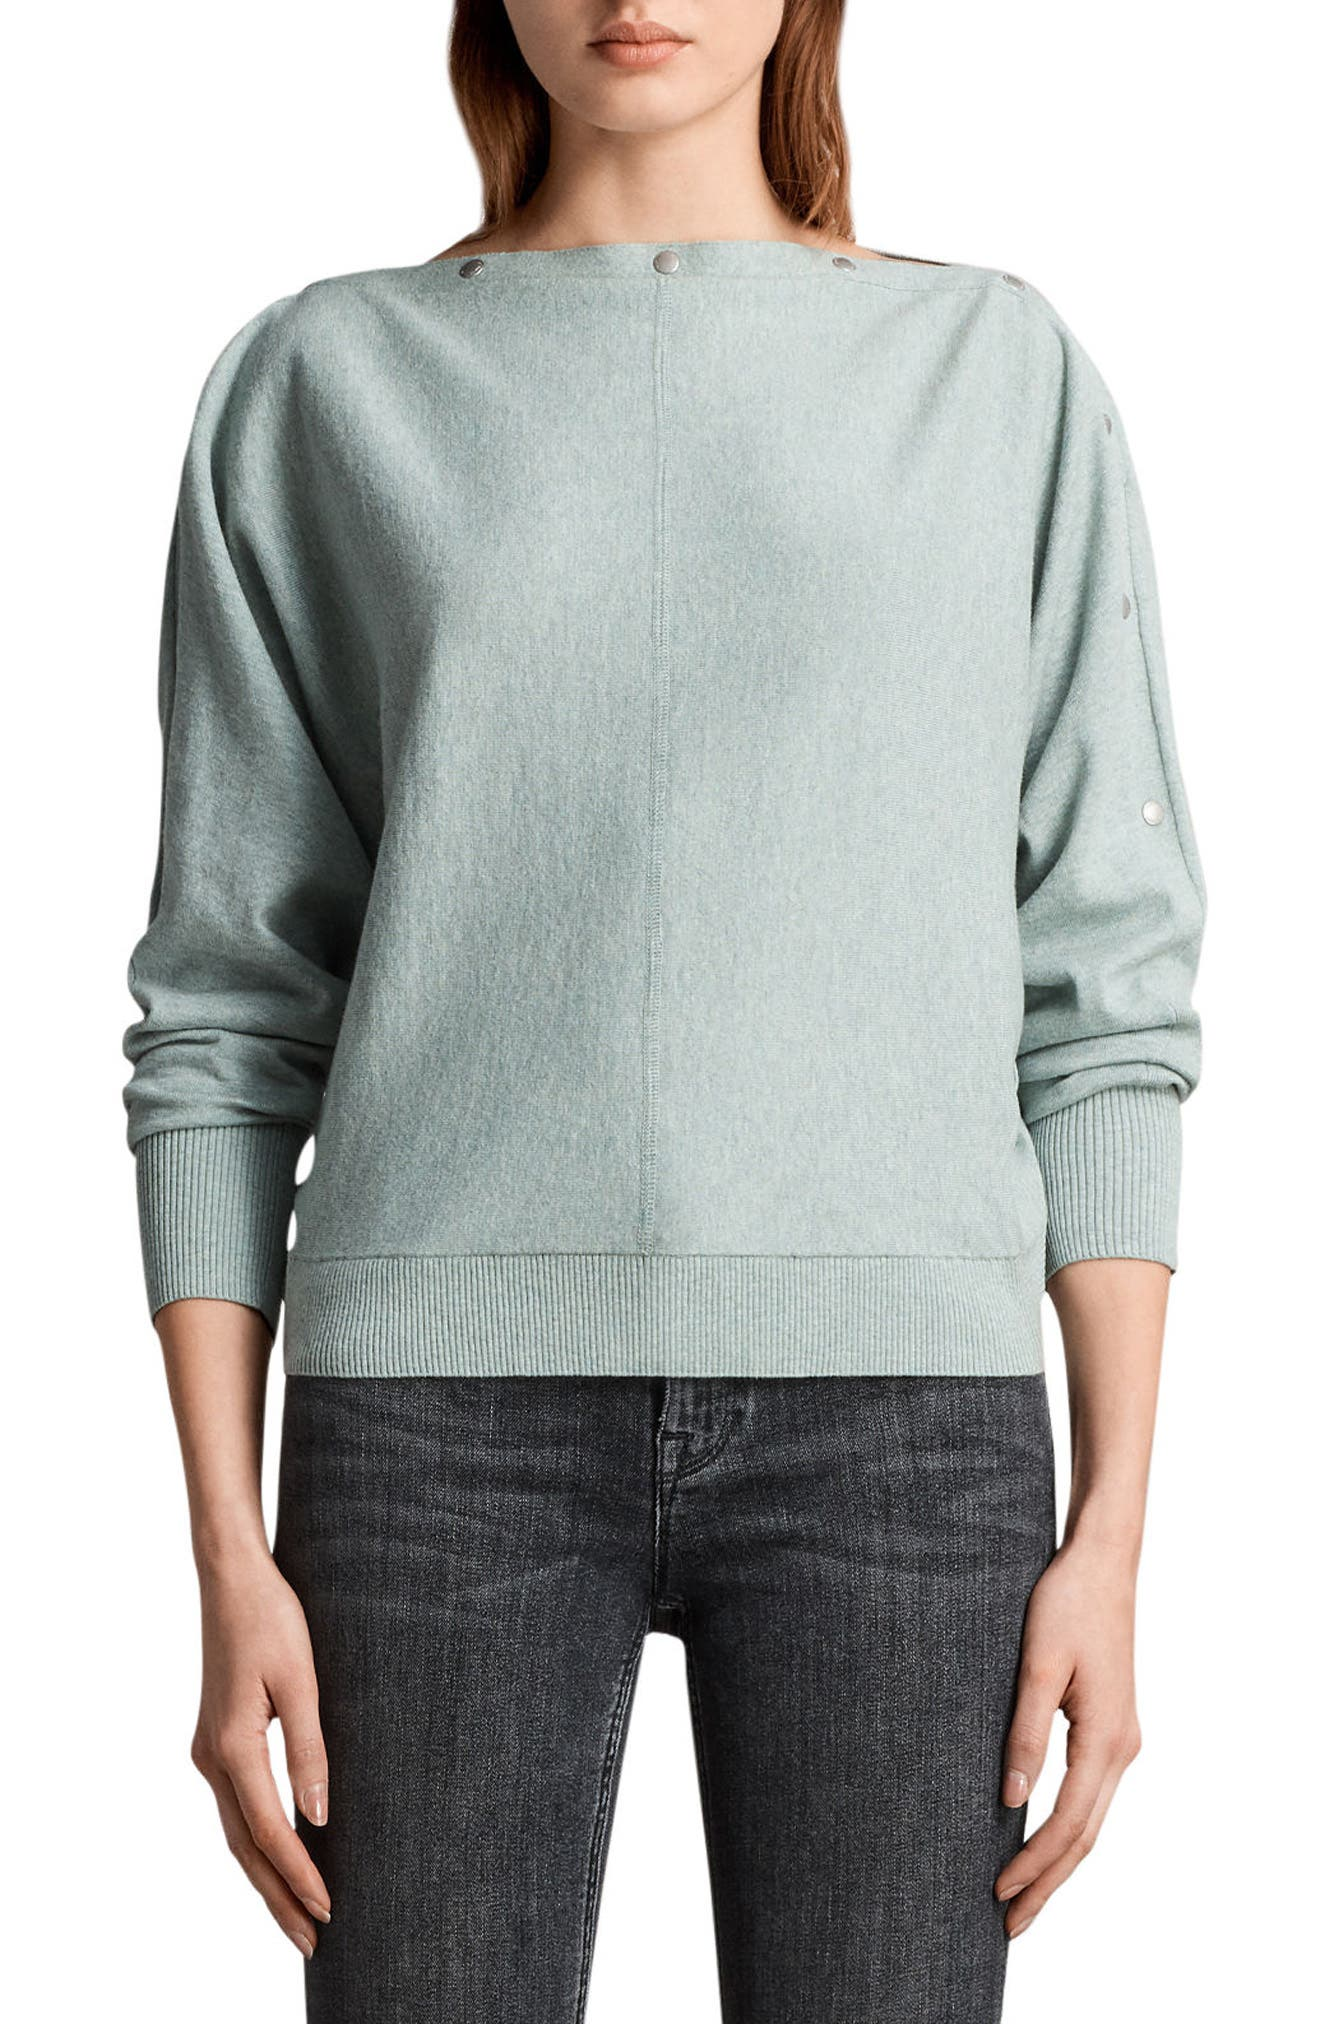 Elle Sweater,                             Main thumbnail 1, color,                             Mint Green